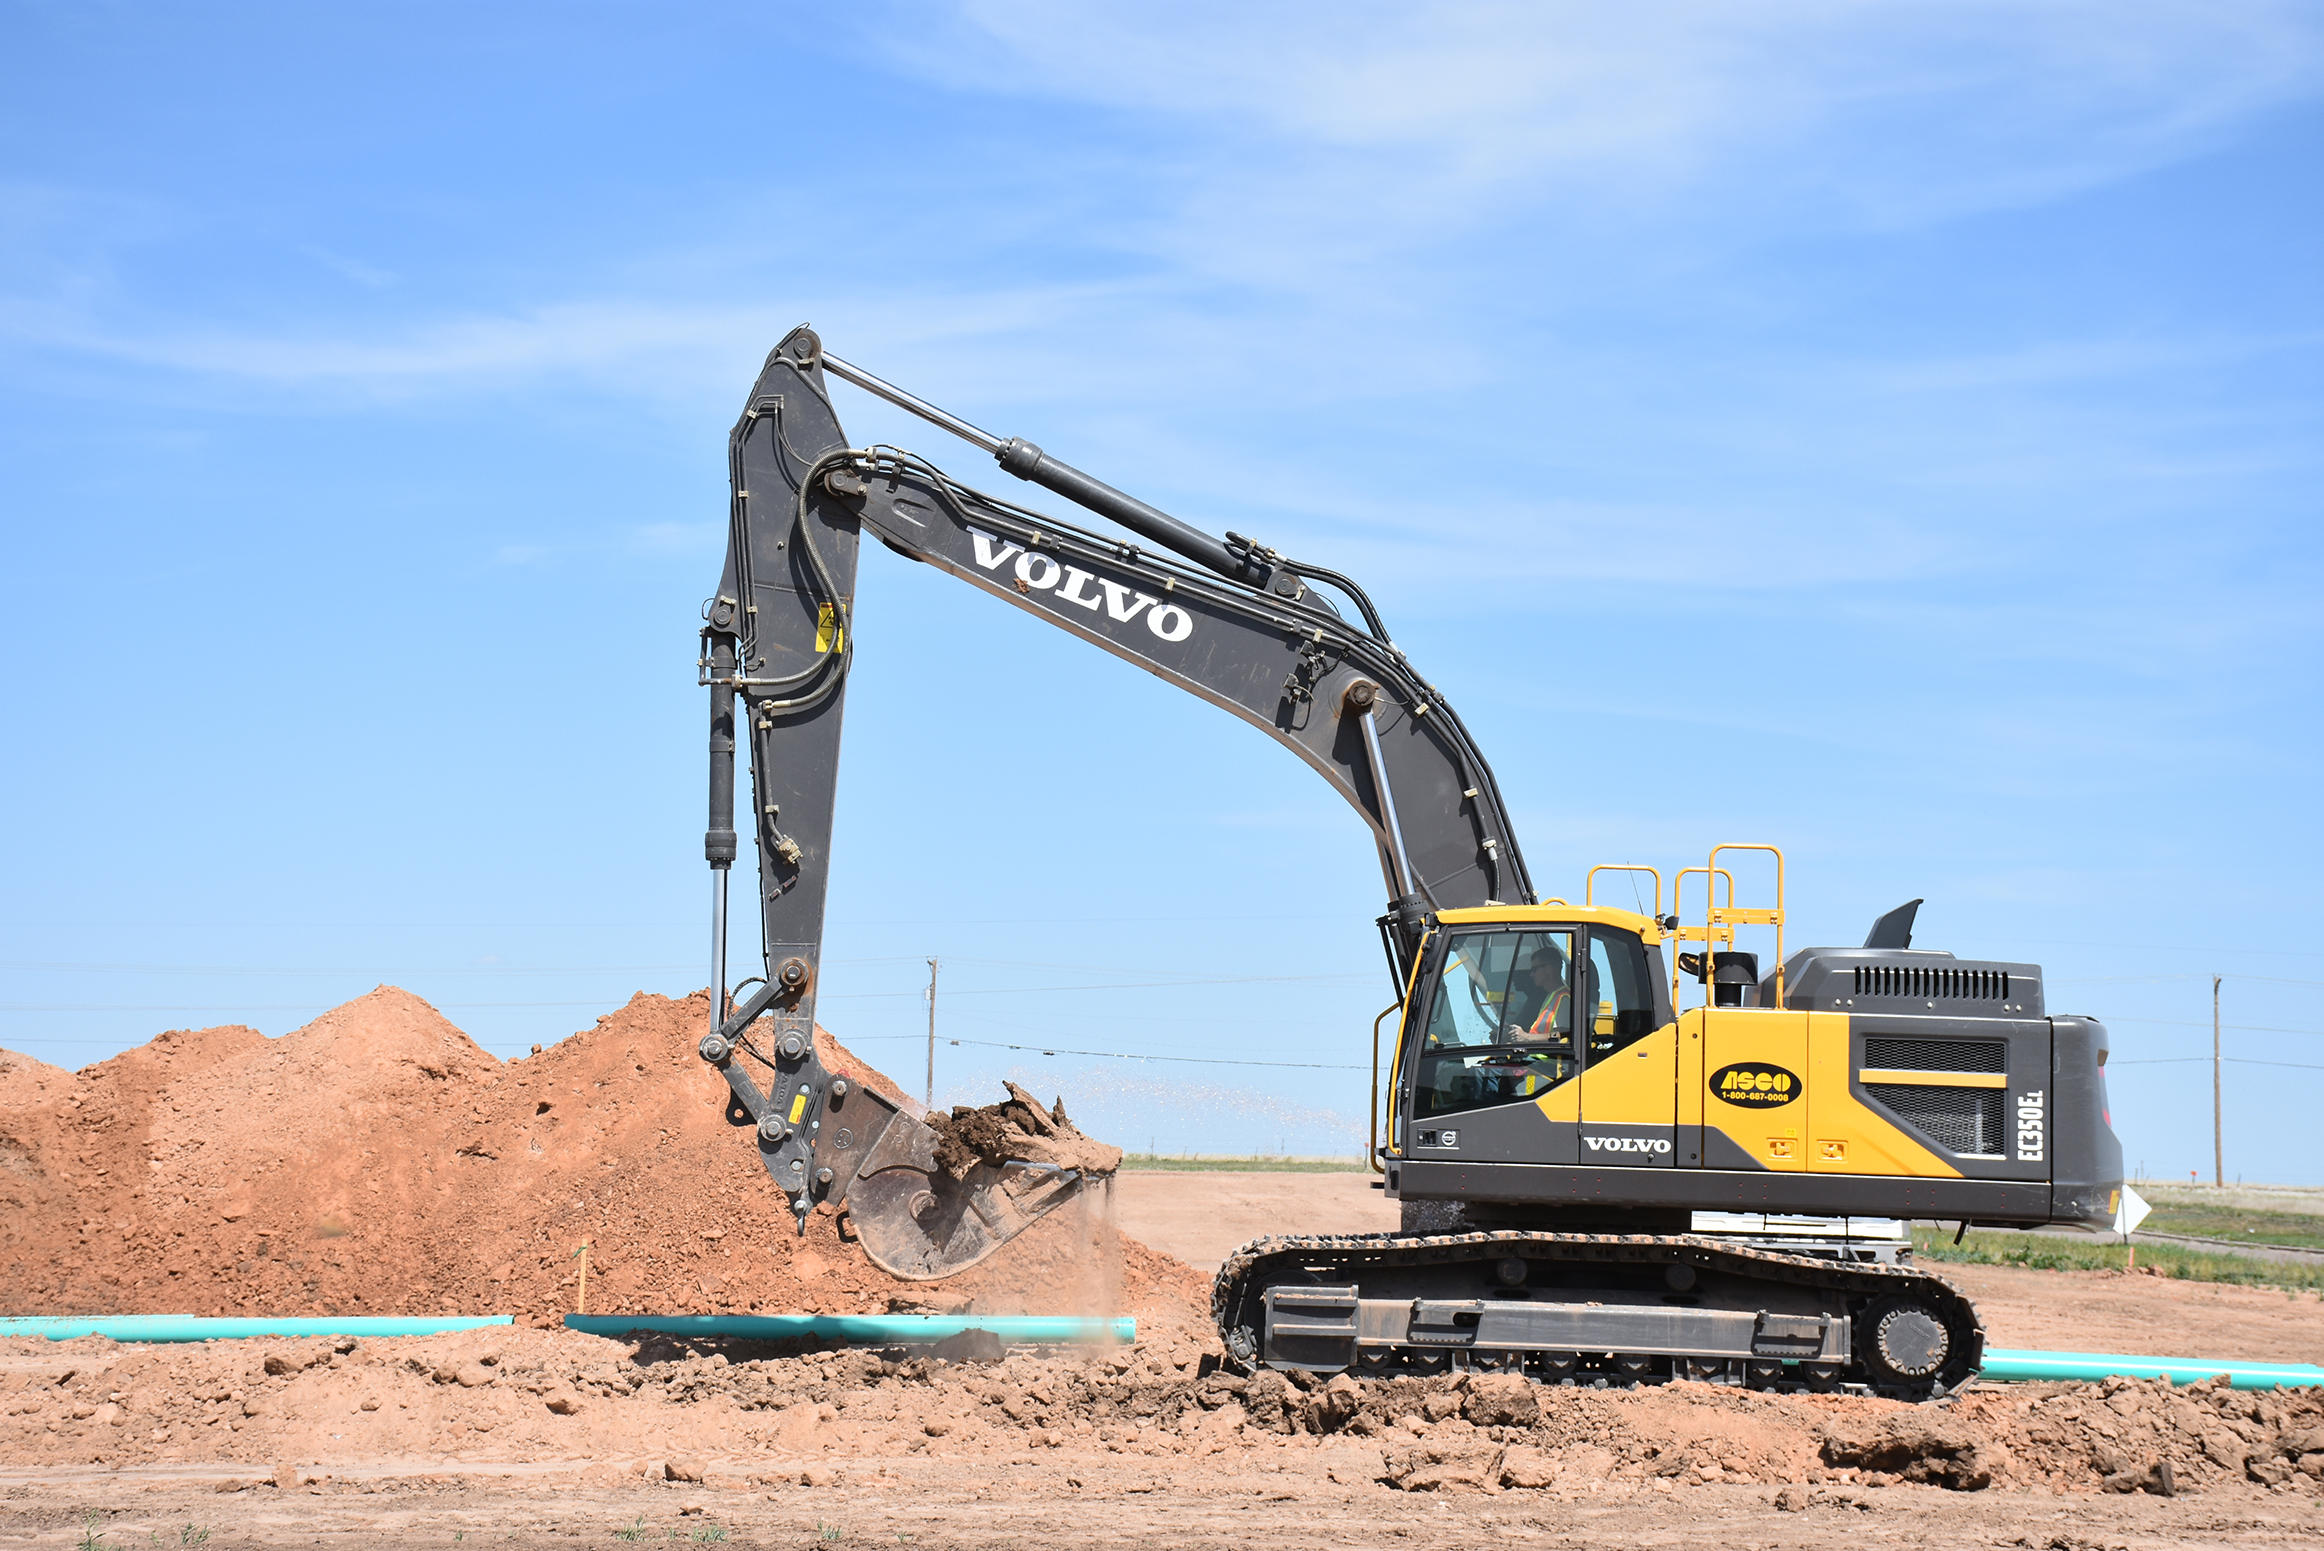 Volvo takes great pains to help water flow in arid Great Plains